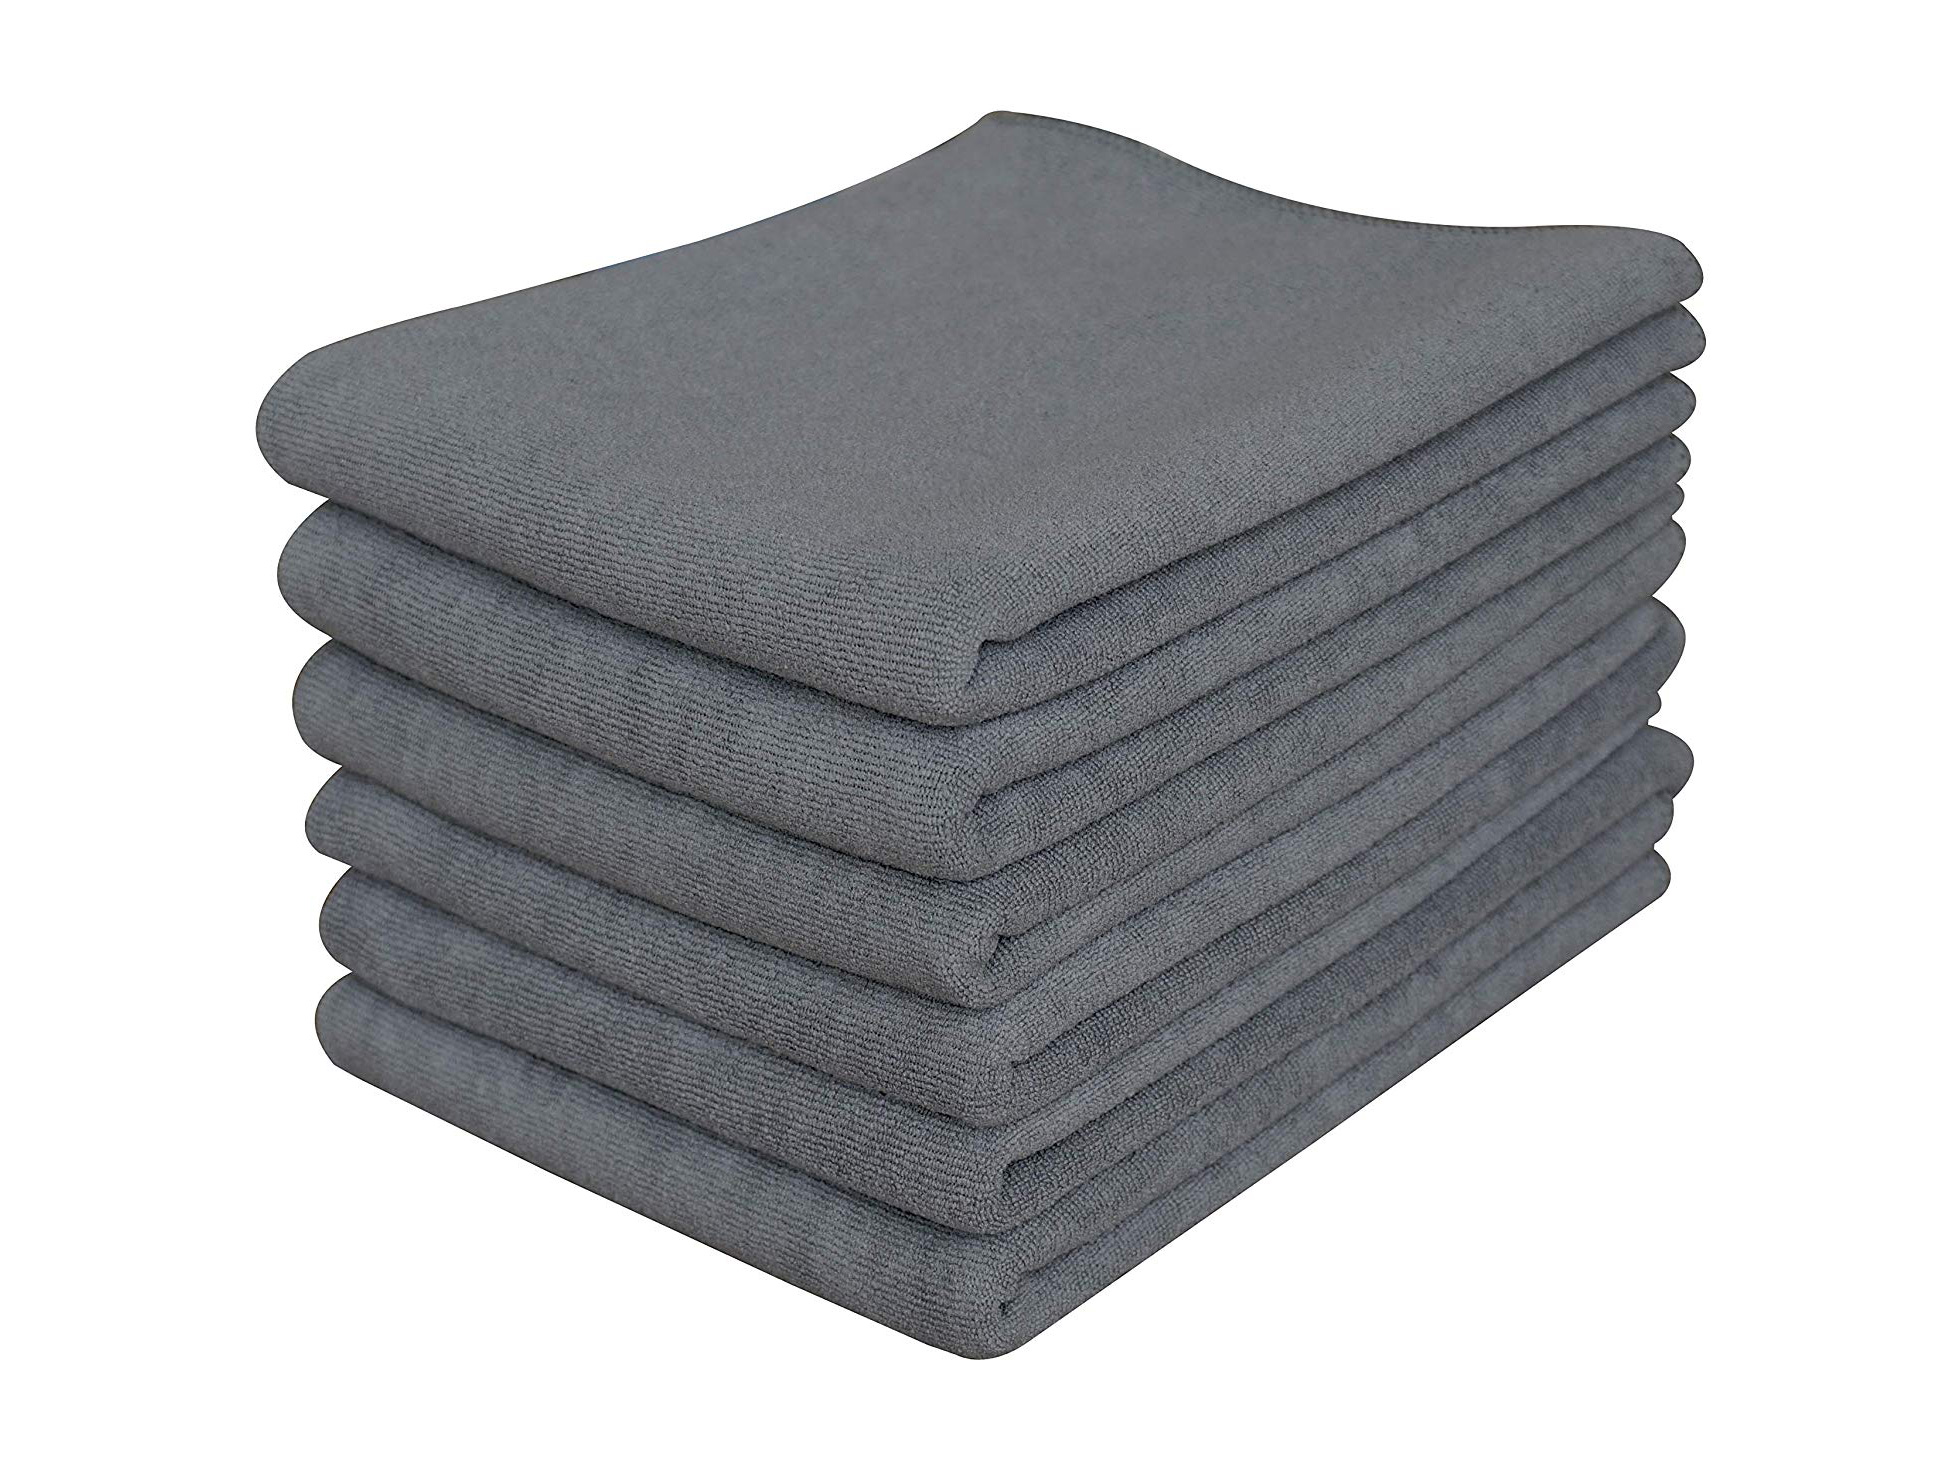 Gryeer Microfiber Kitchen Towels